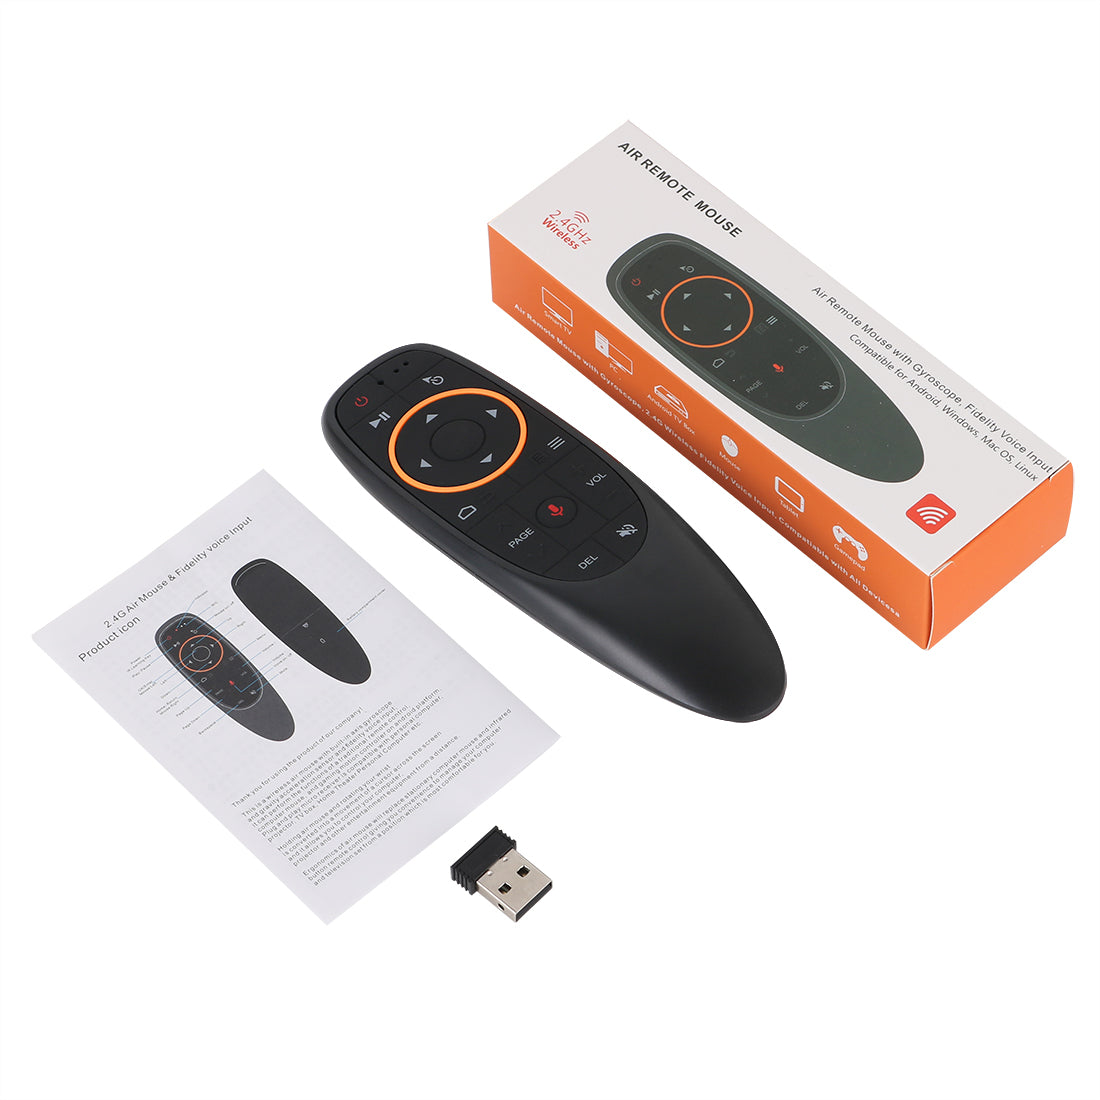 G10s Gyroscope 2.4GHz WIFI Googlo Assistant Voice Remote Control Air Mouse